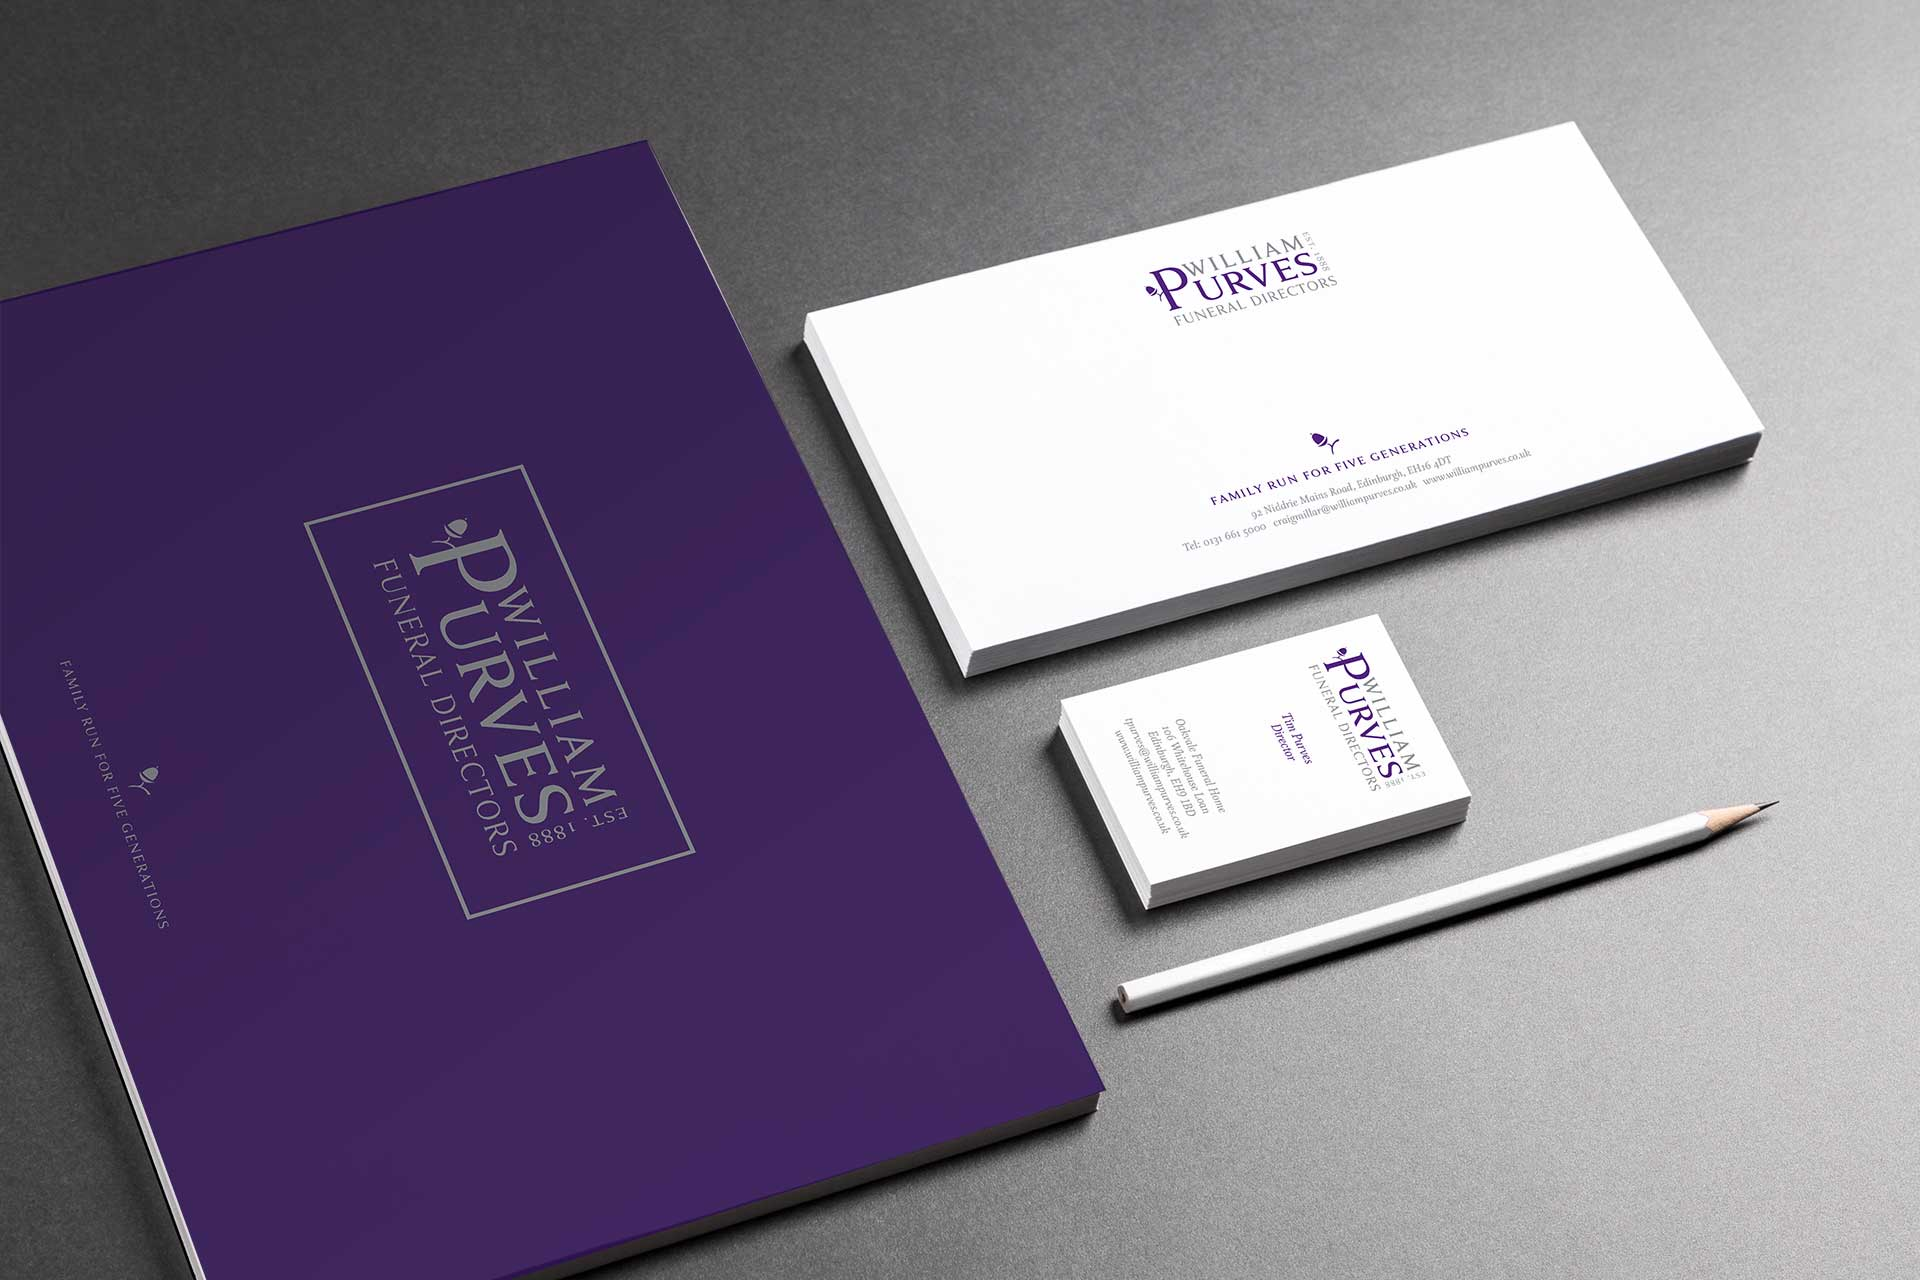 Design for print examples for funeral industry marketing